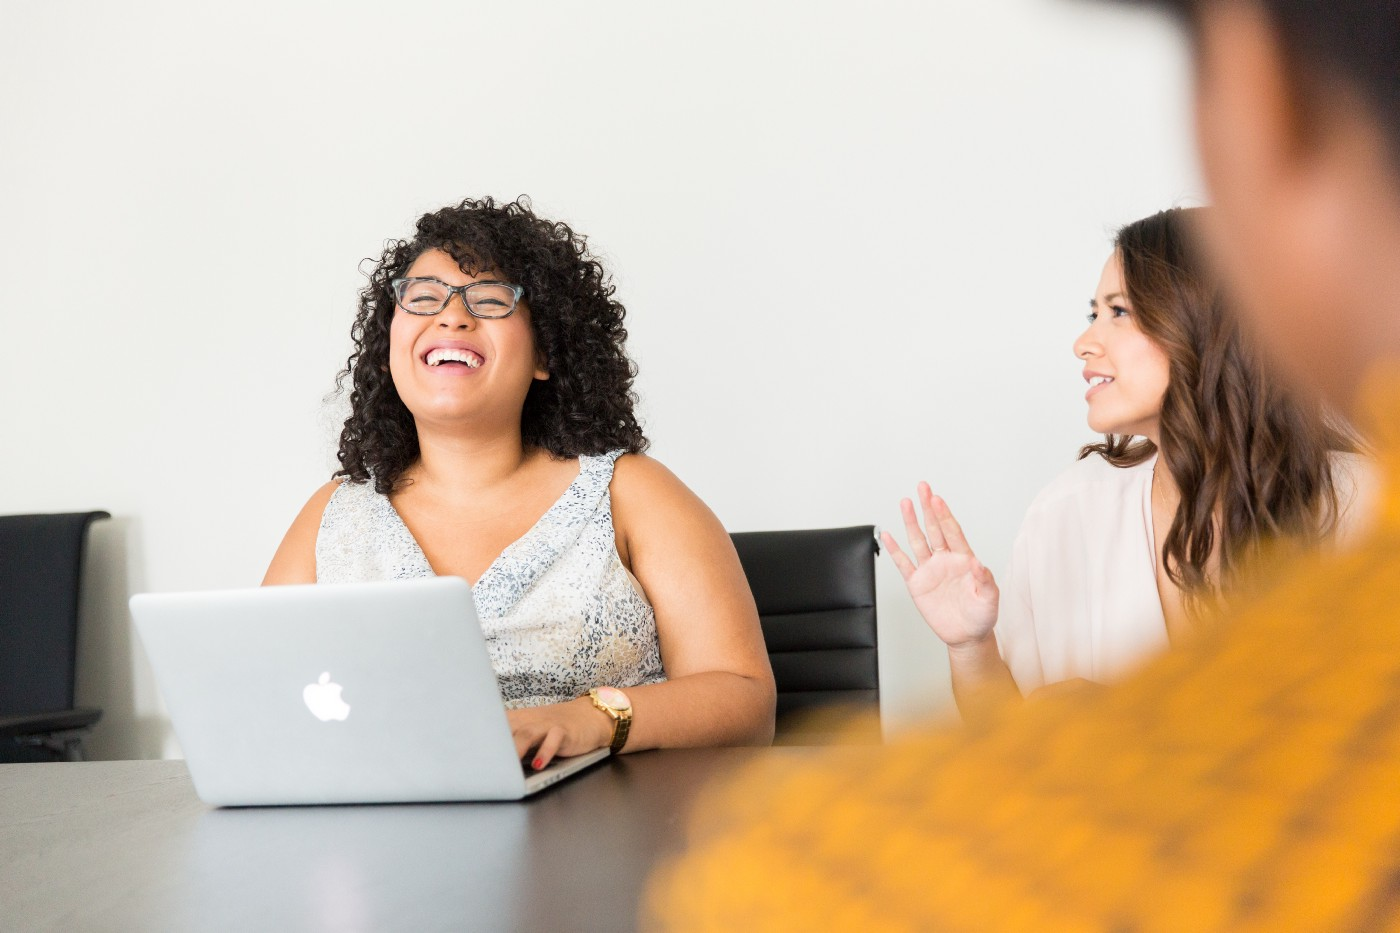 Fun at work. Conference room. One woman types on her MacBook, laughing as her coworker tells an animated story.